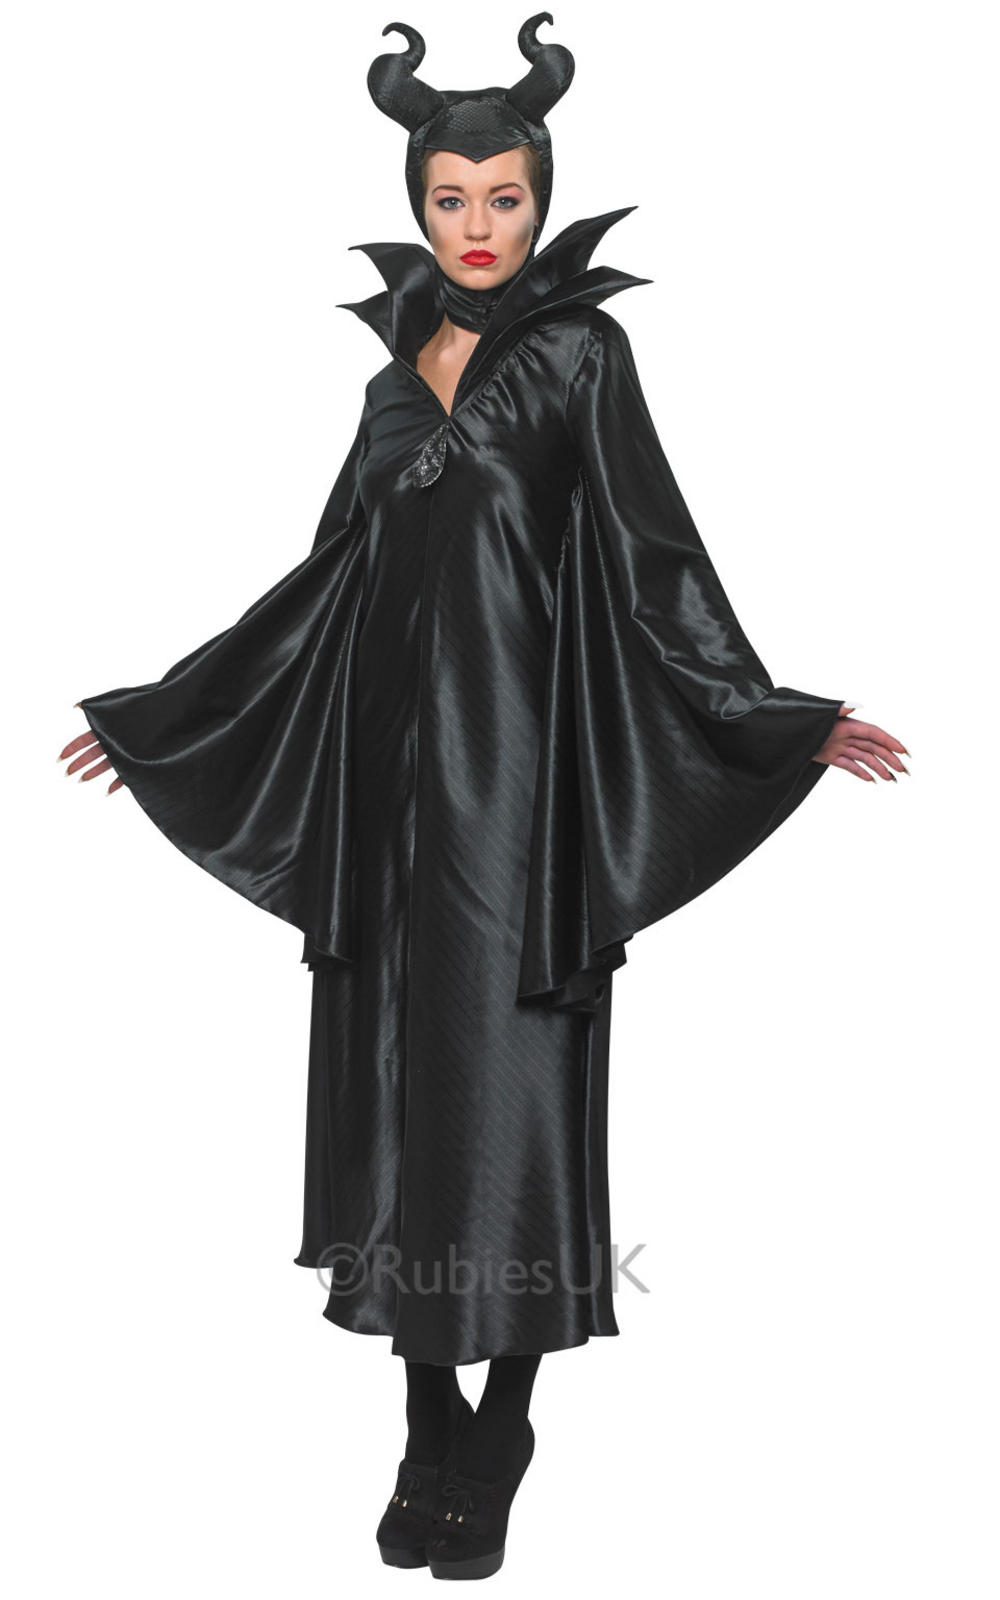 Disneys Official Maleficent Costume